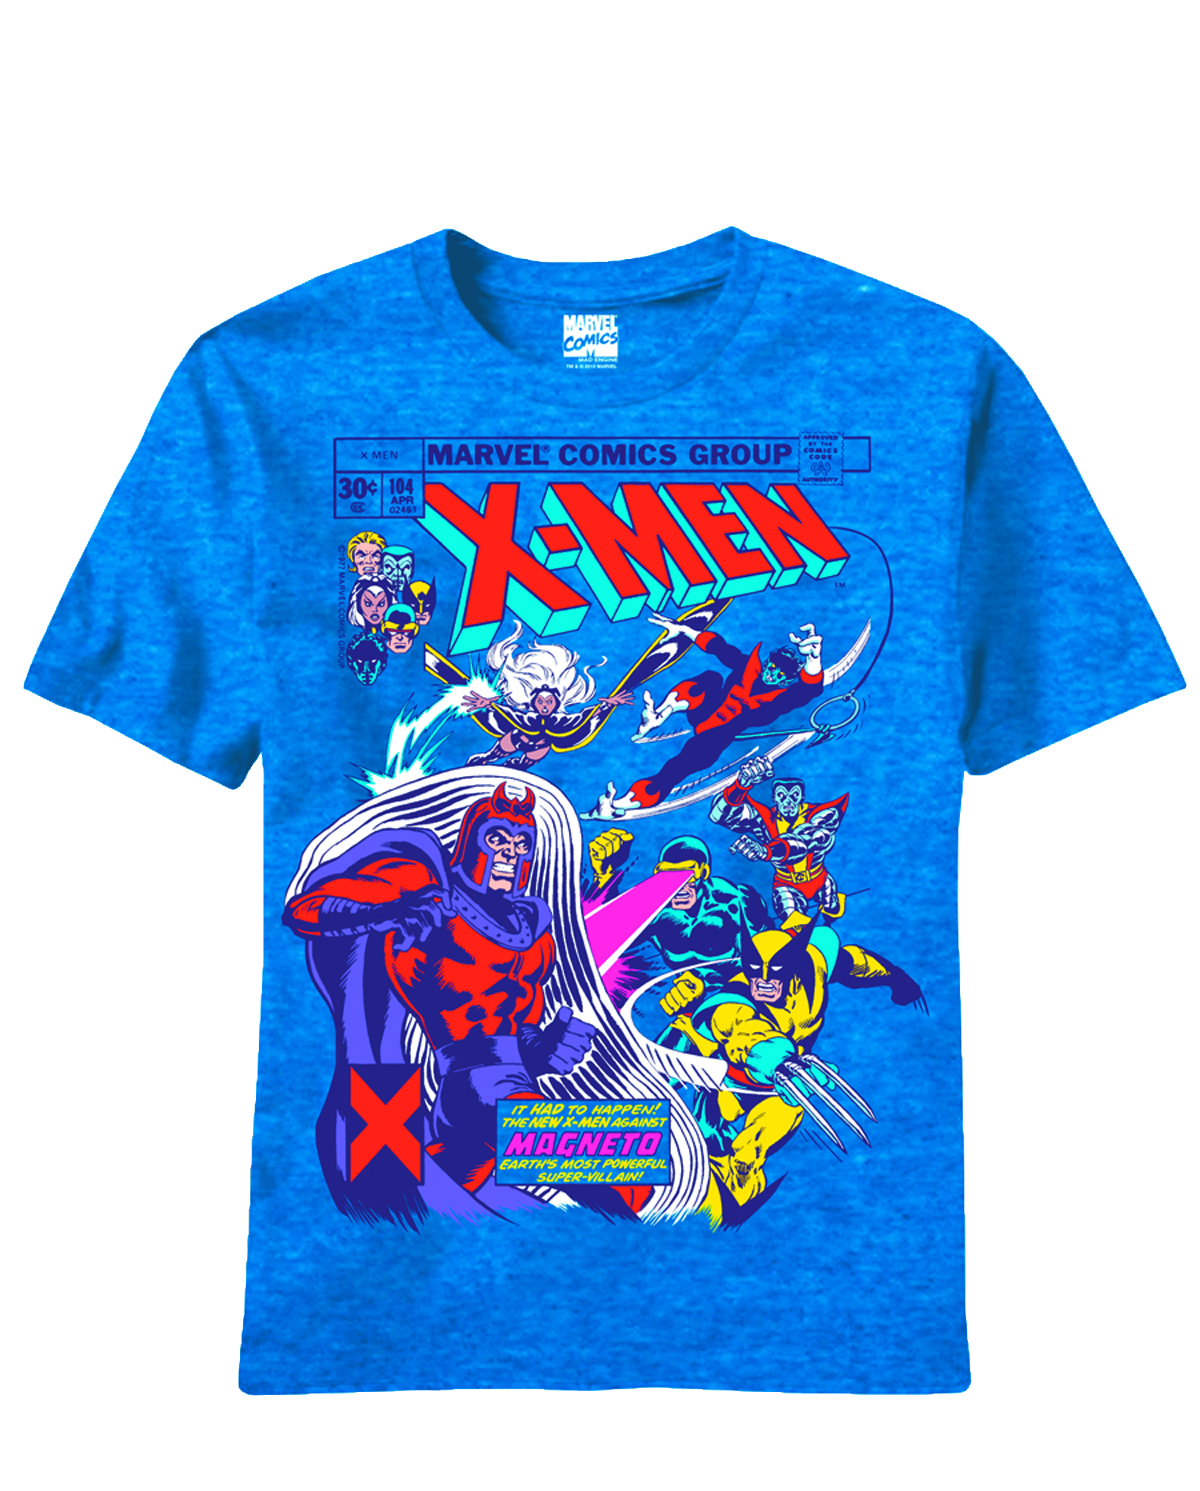 X-MEN MAGNA SHIELD PX BLUE HEATHER T/S MED